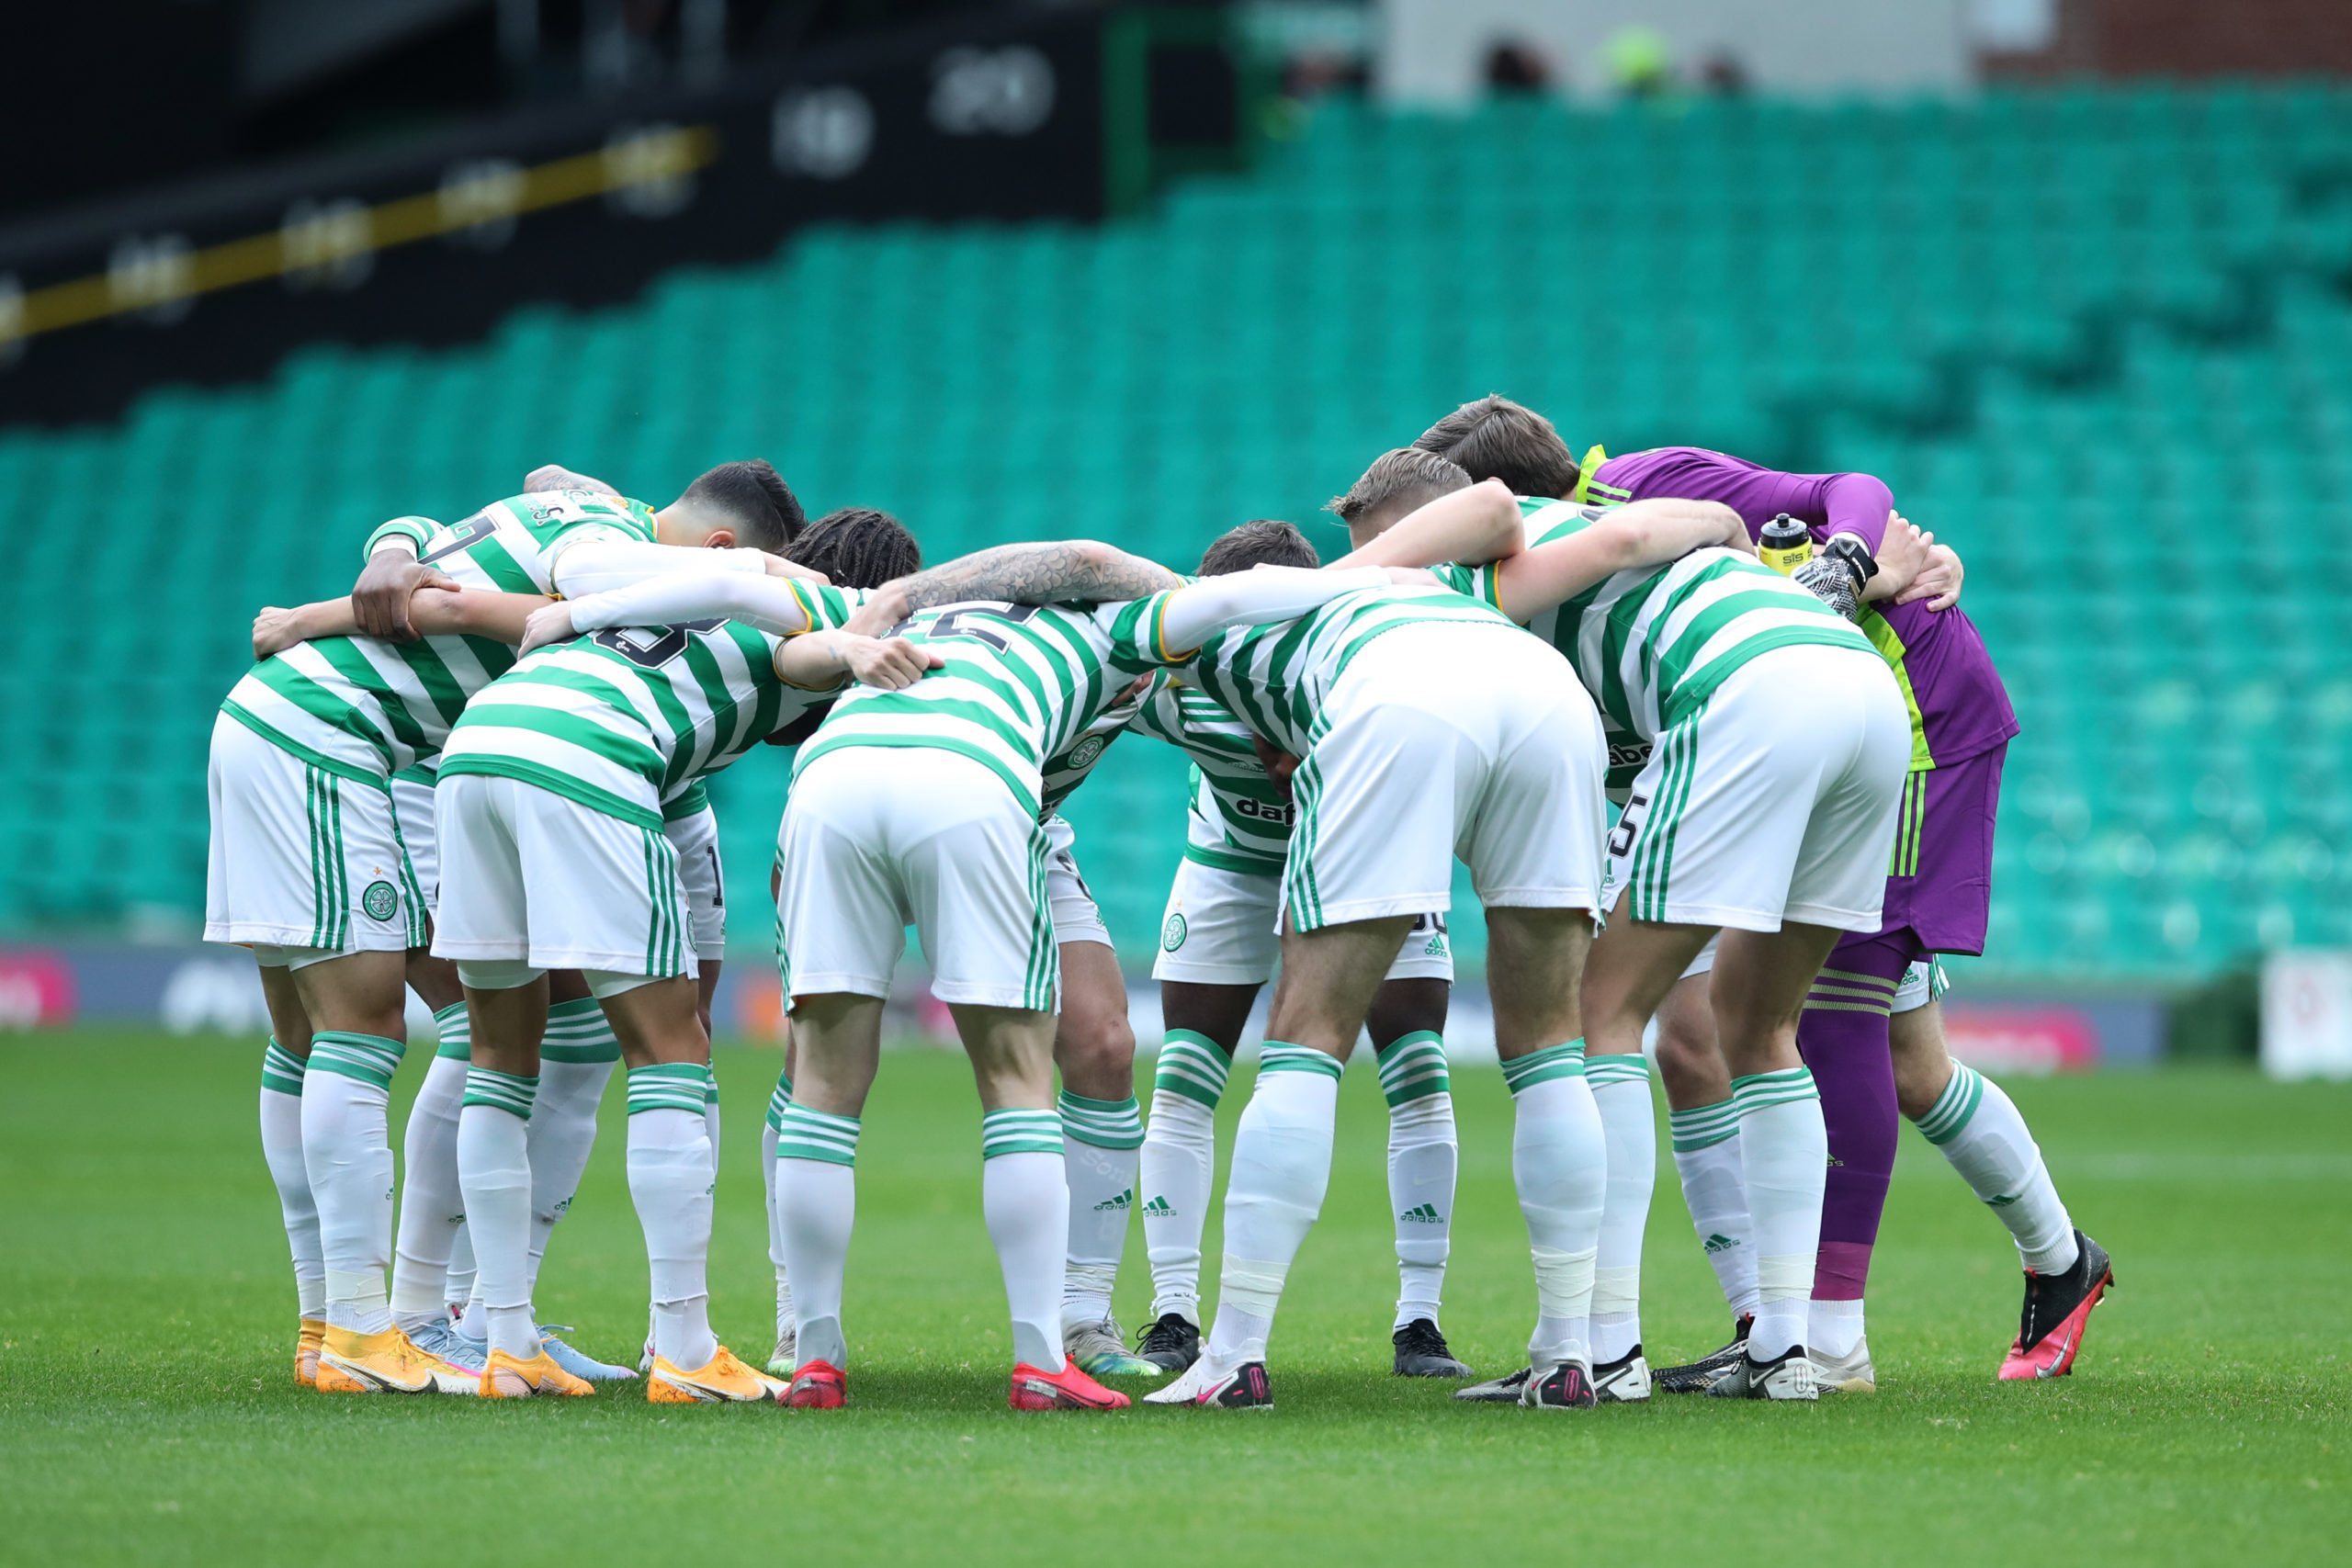 Celtic before today's match against Rangers